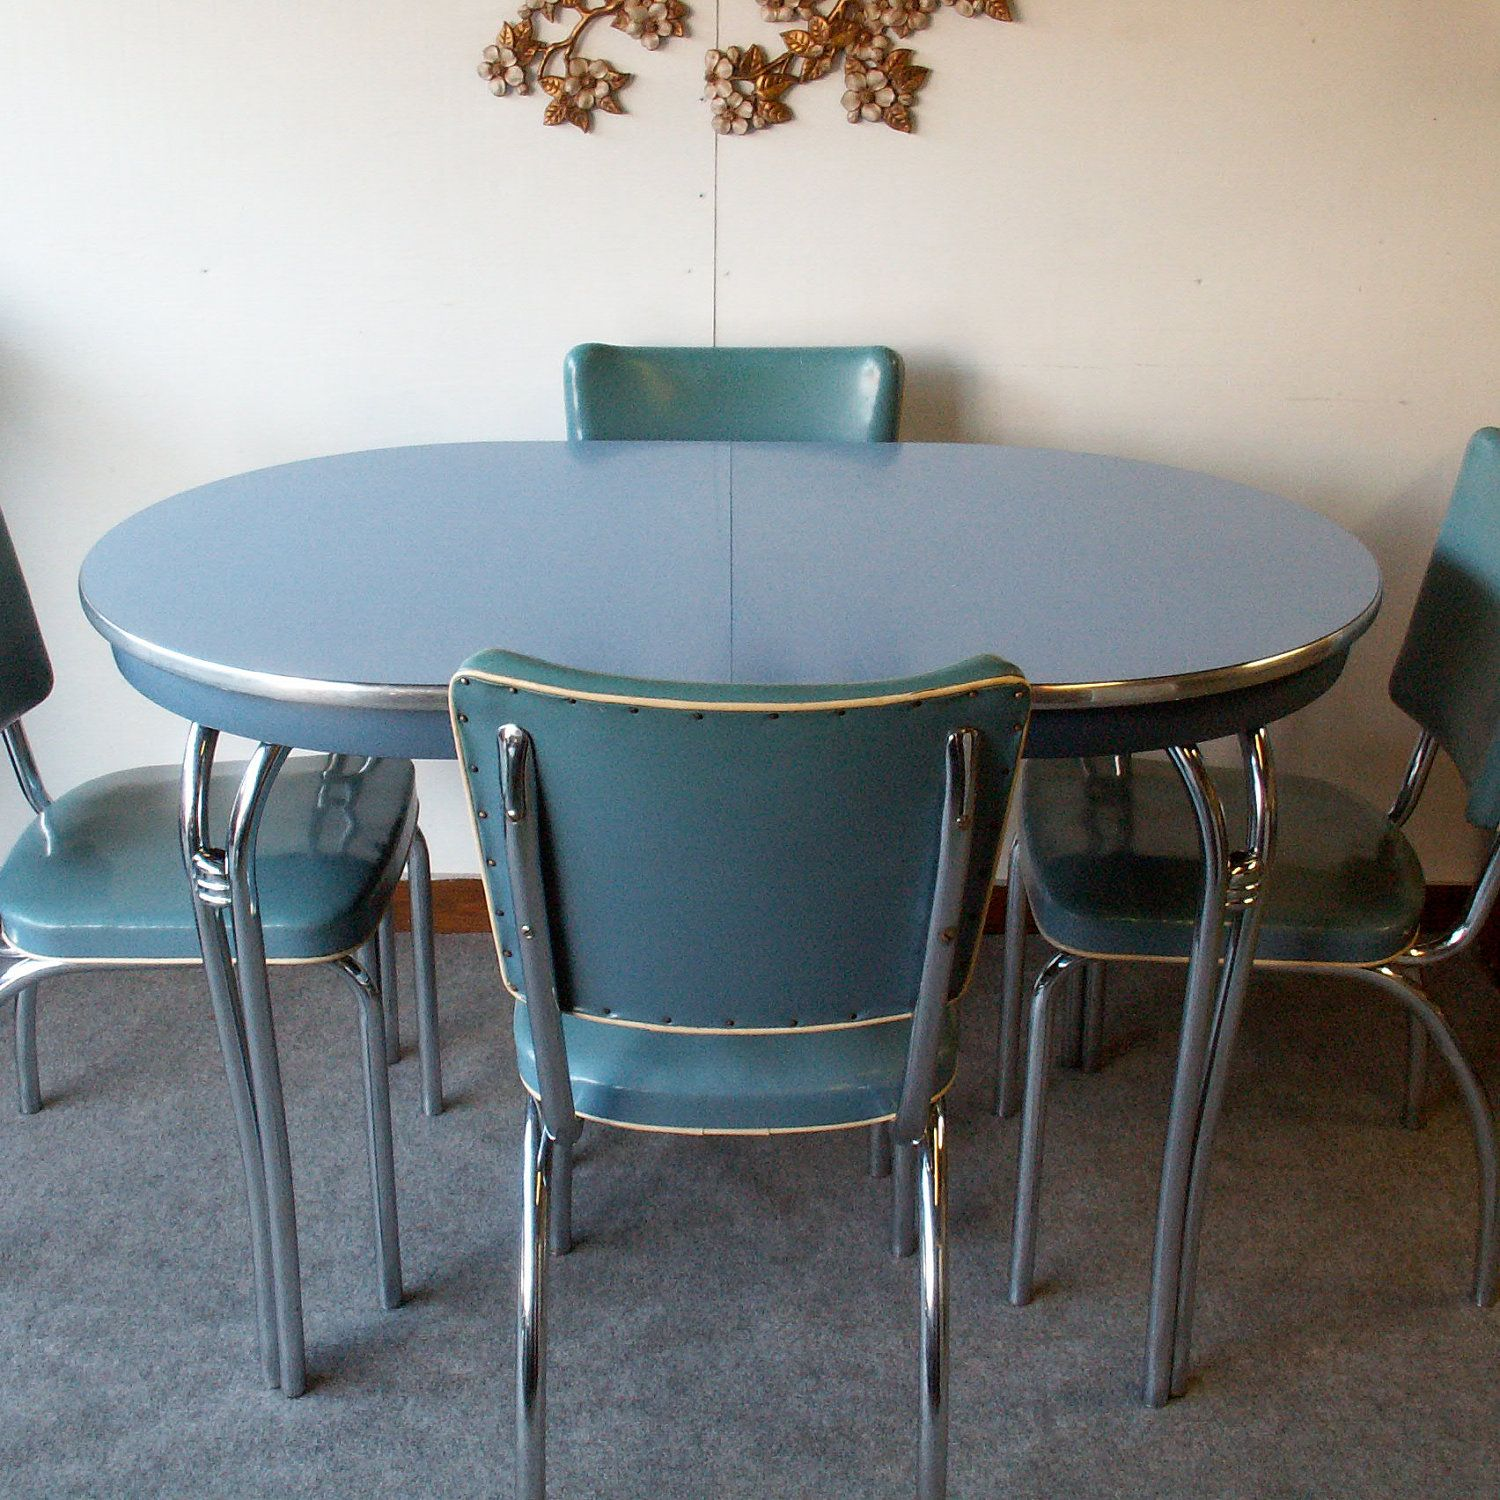 Vintage Blue Formica Table With Chairs Retro Kitchen Tables Dinette Sets Retro Table And Chairs